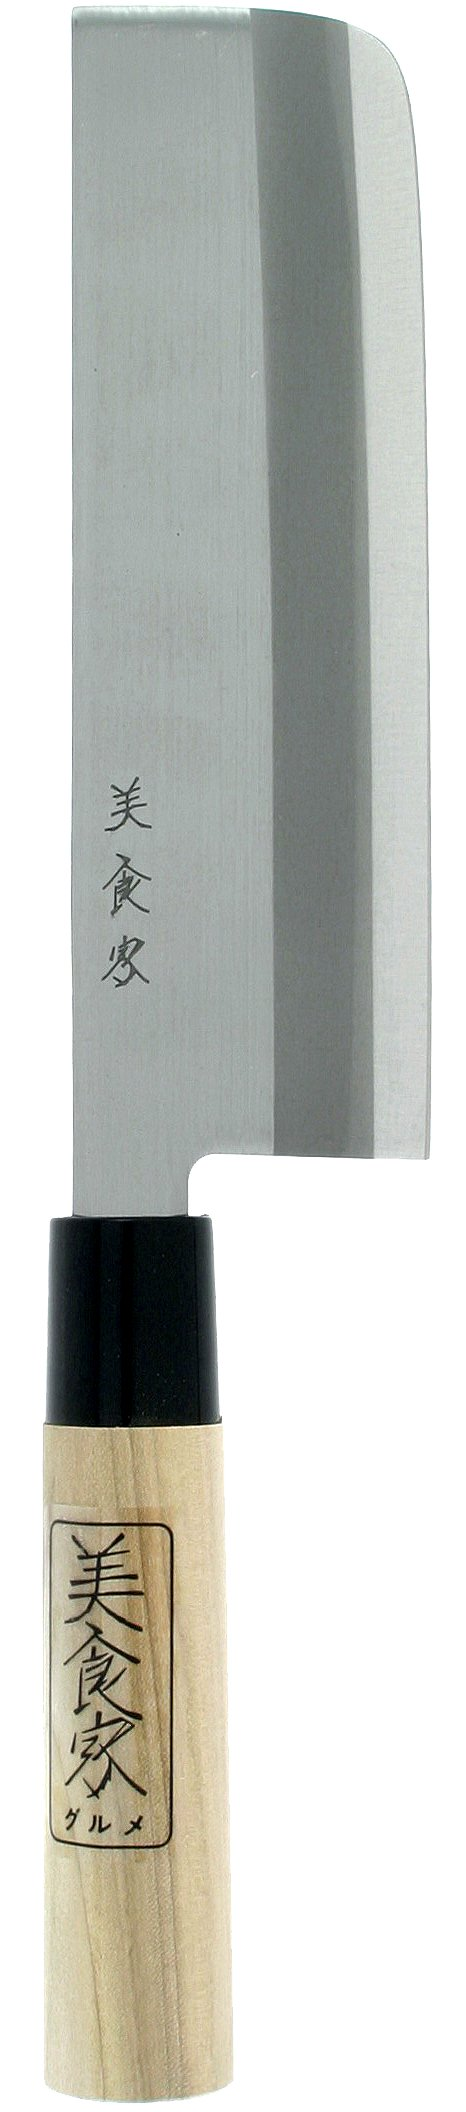 Kotobuki Japanese Nakiri Vegetable Knife, 6 to 1/2-Inch, Silver